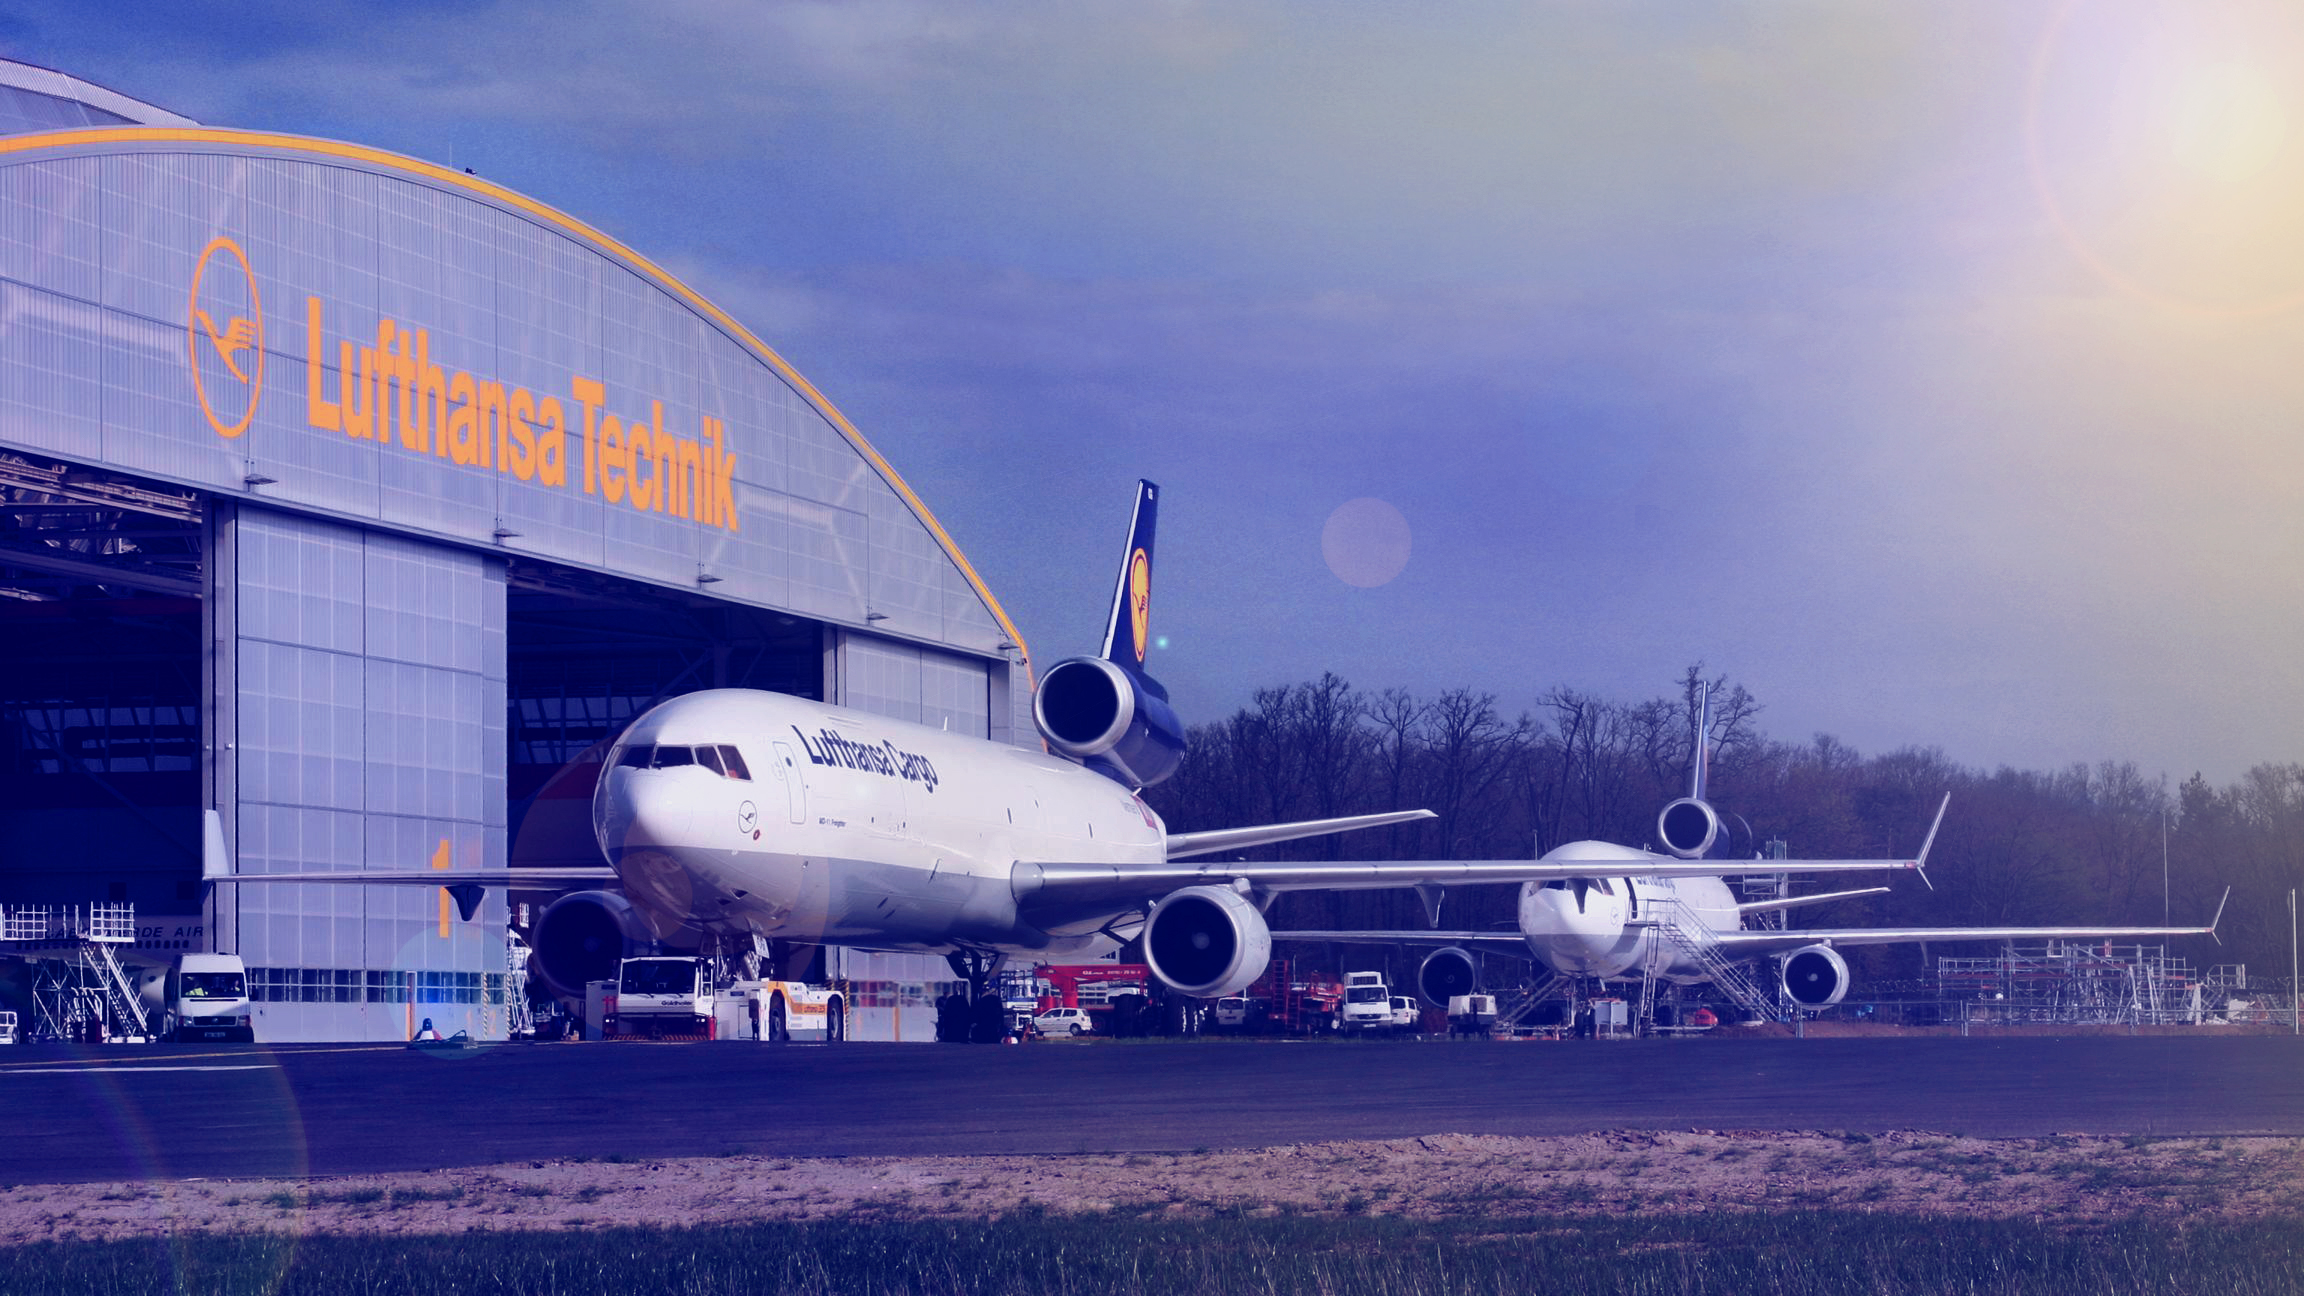 Biggest downfall at Lufthansa that says aviation won't improve for years